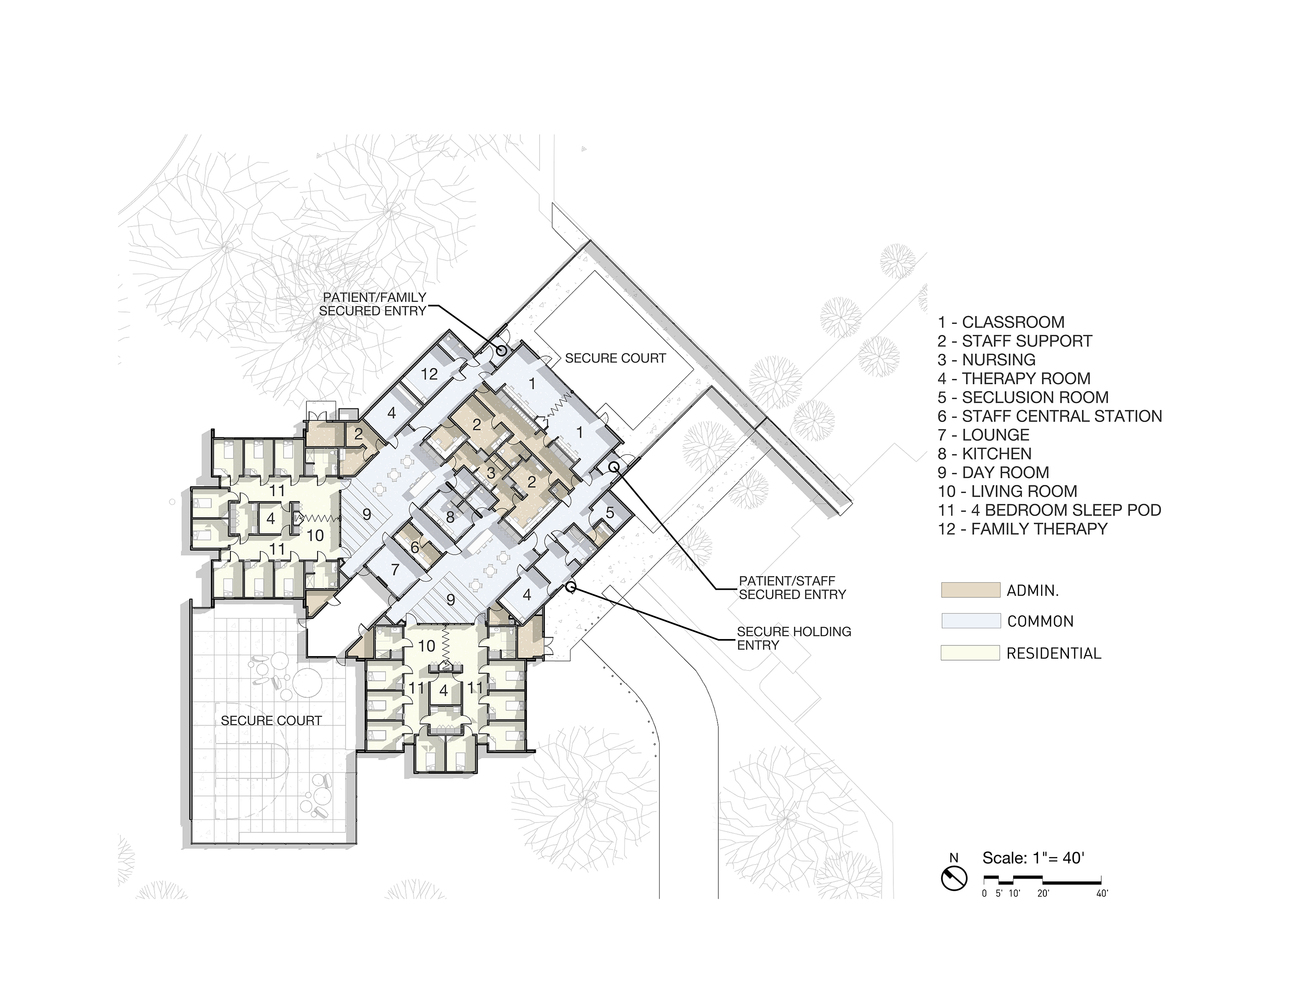 Gallery of Trillium Secure Adolescent Inpatient Facility TVA – Secure Home Floor Plans